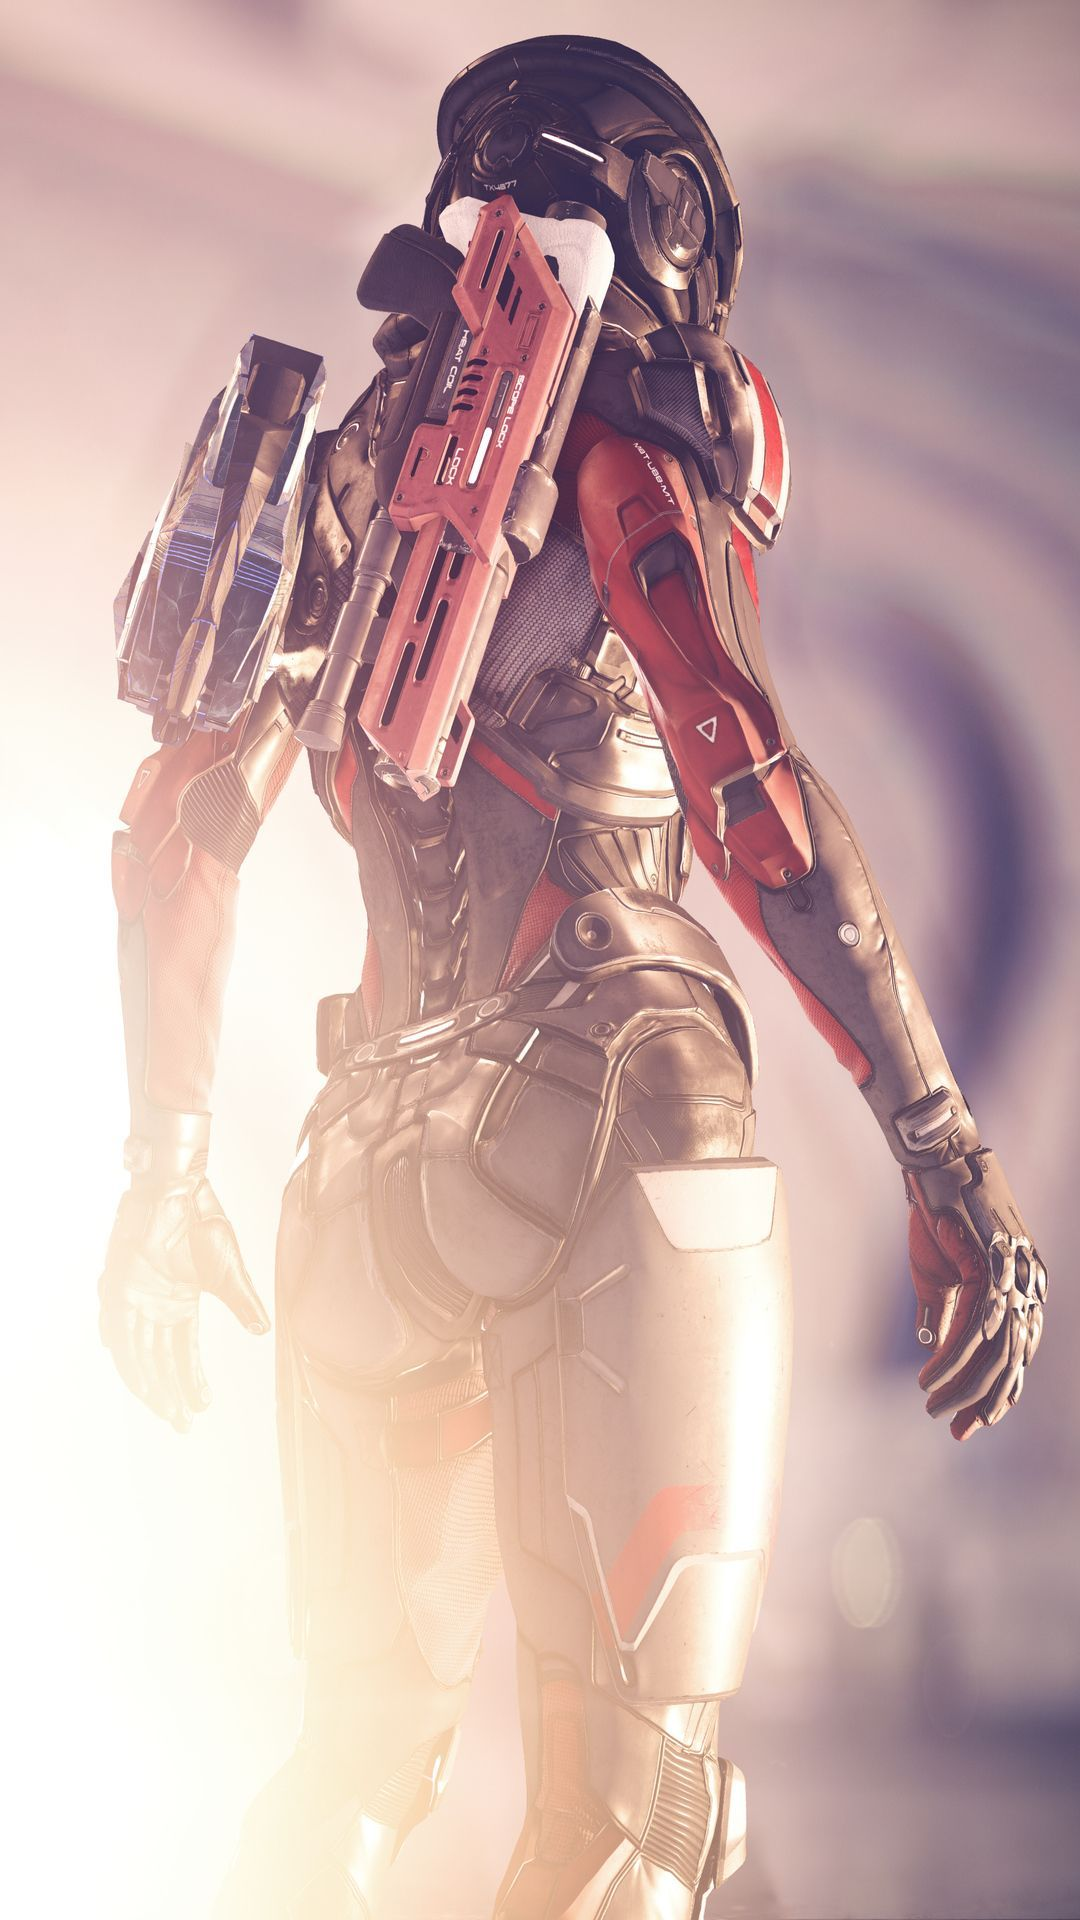 Mass Effect Andromeda 2019 4k Mobile Wallpaper Iphone Android Samsung Pixel Xiaomi In 2020 Mass Effect Mobile Wallpaper Iphone Wallpaper